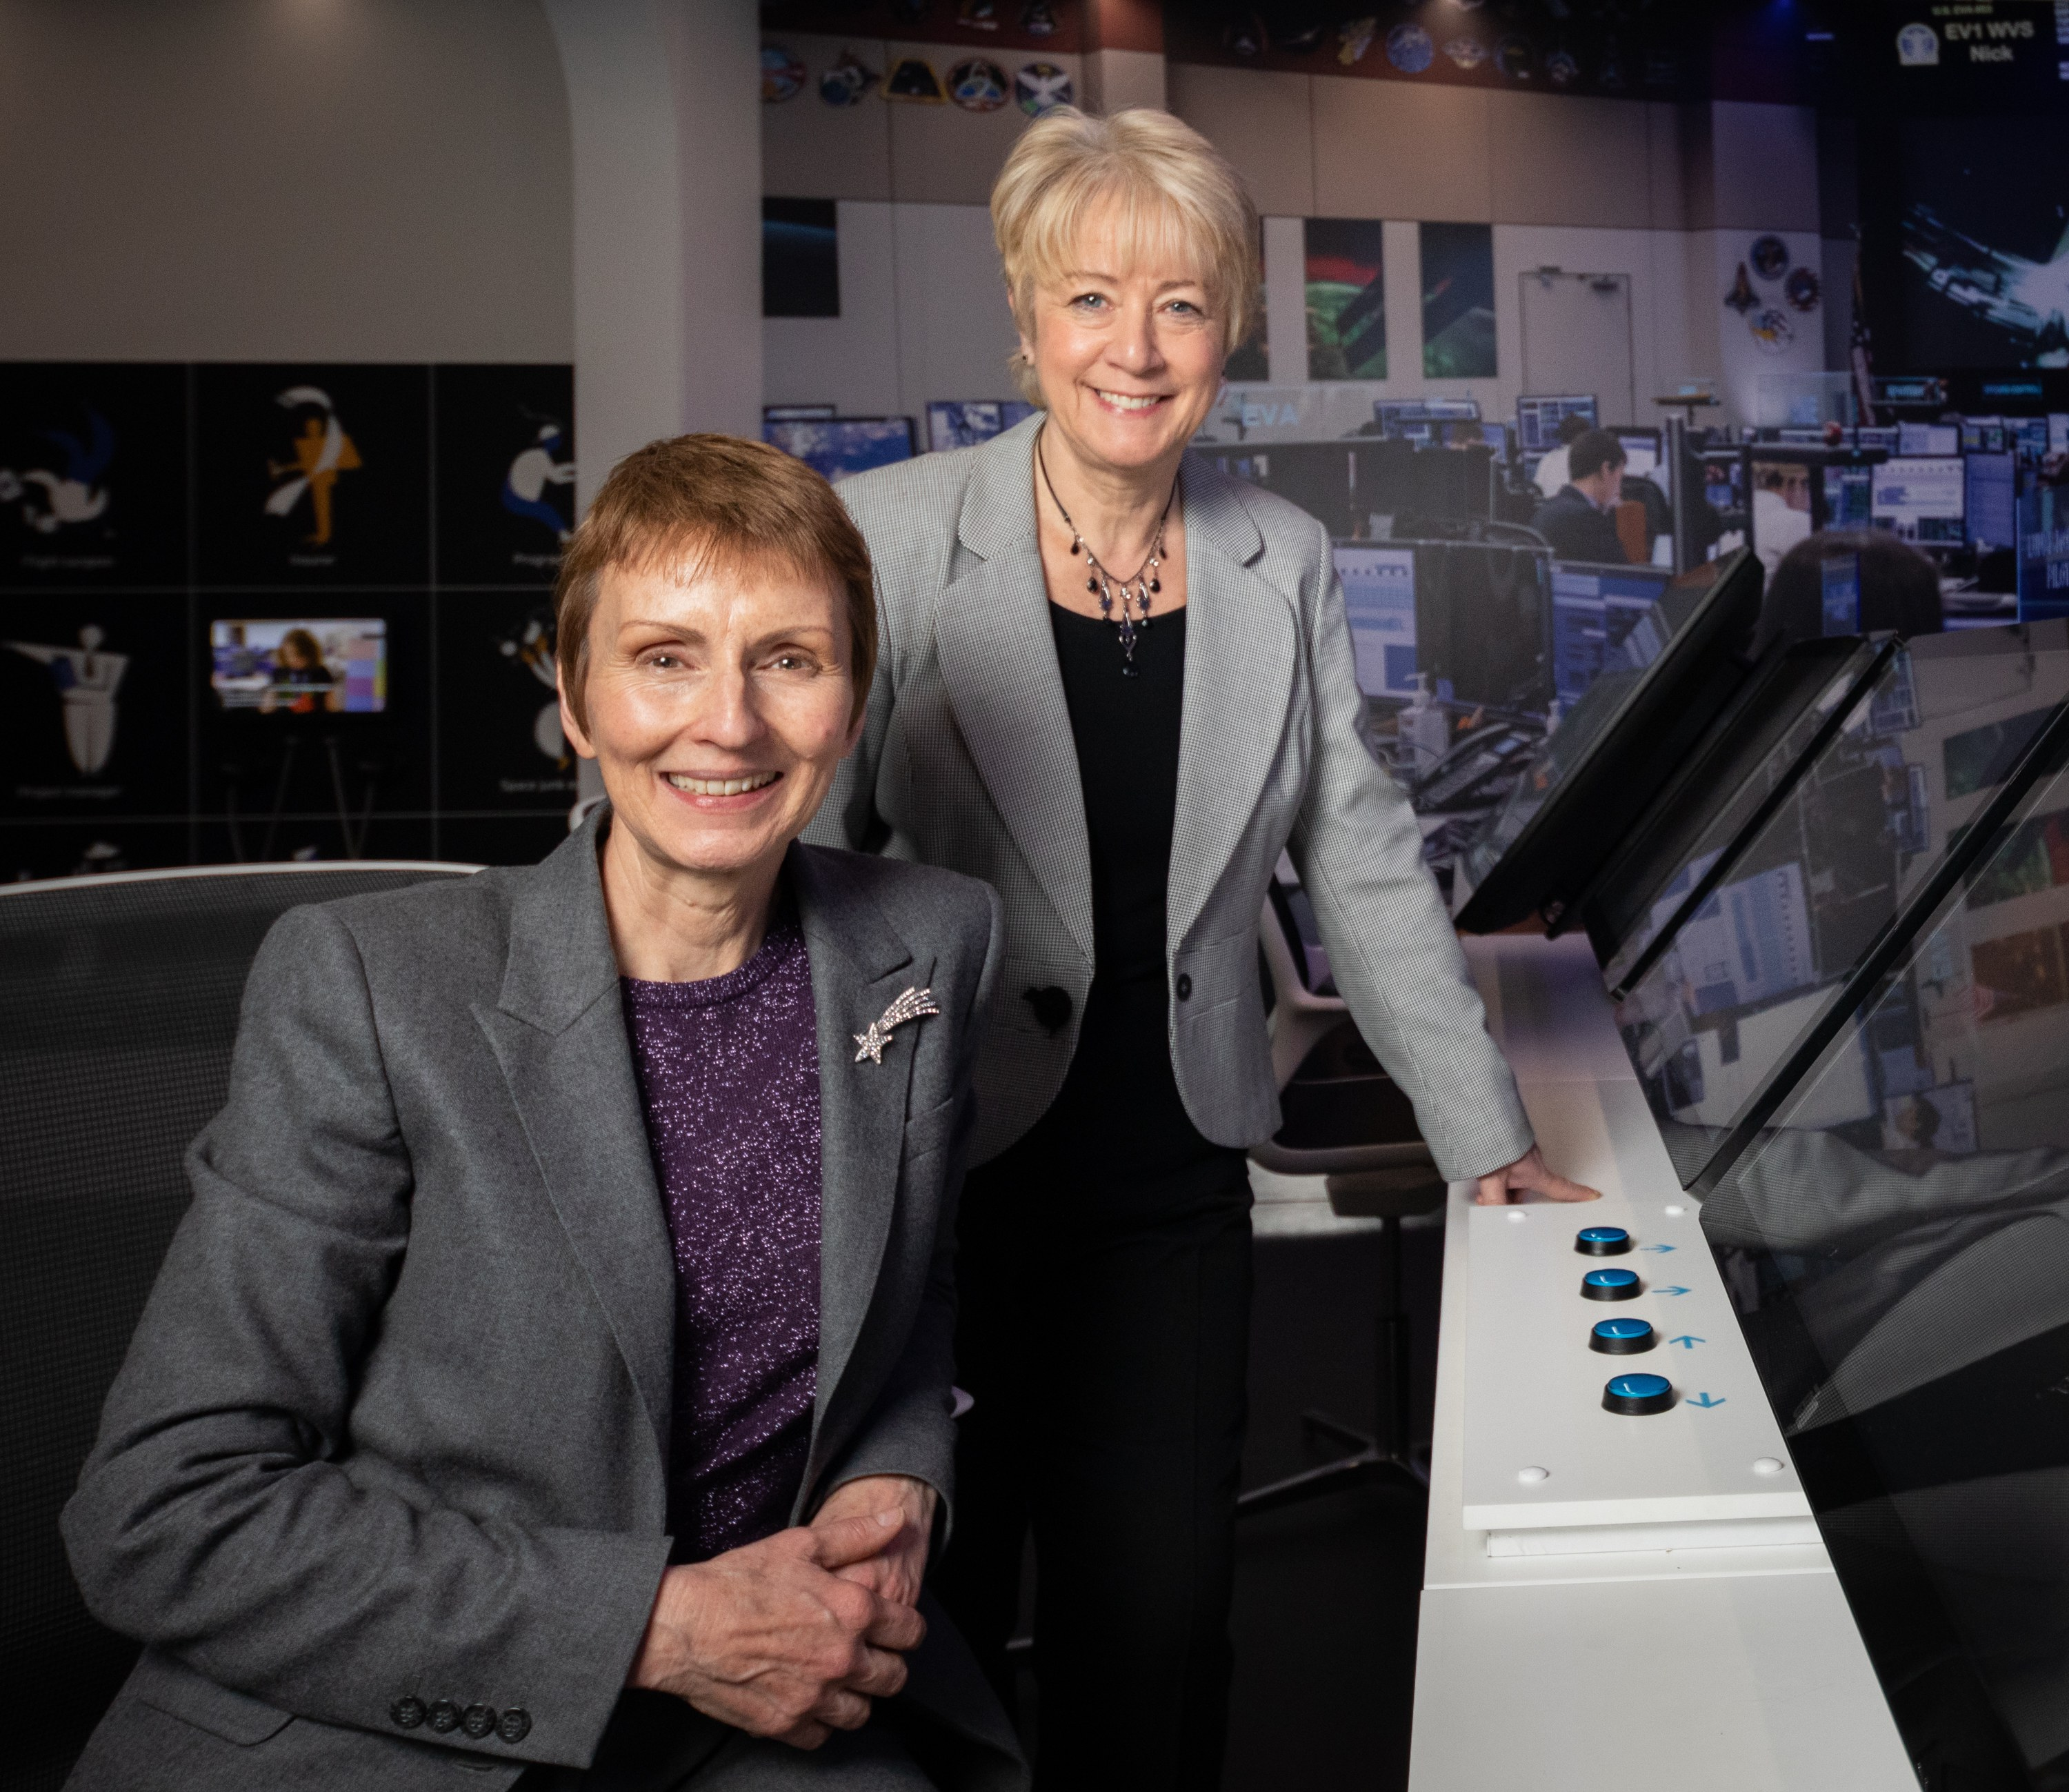 Britain's first astronaut Helen Sharman (left) and Linda Conlon (right) in Mission Control in Life Science Centre's new Space Zone. Image credit: Life Science Centre